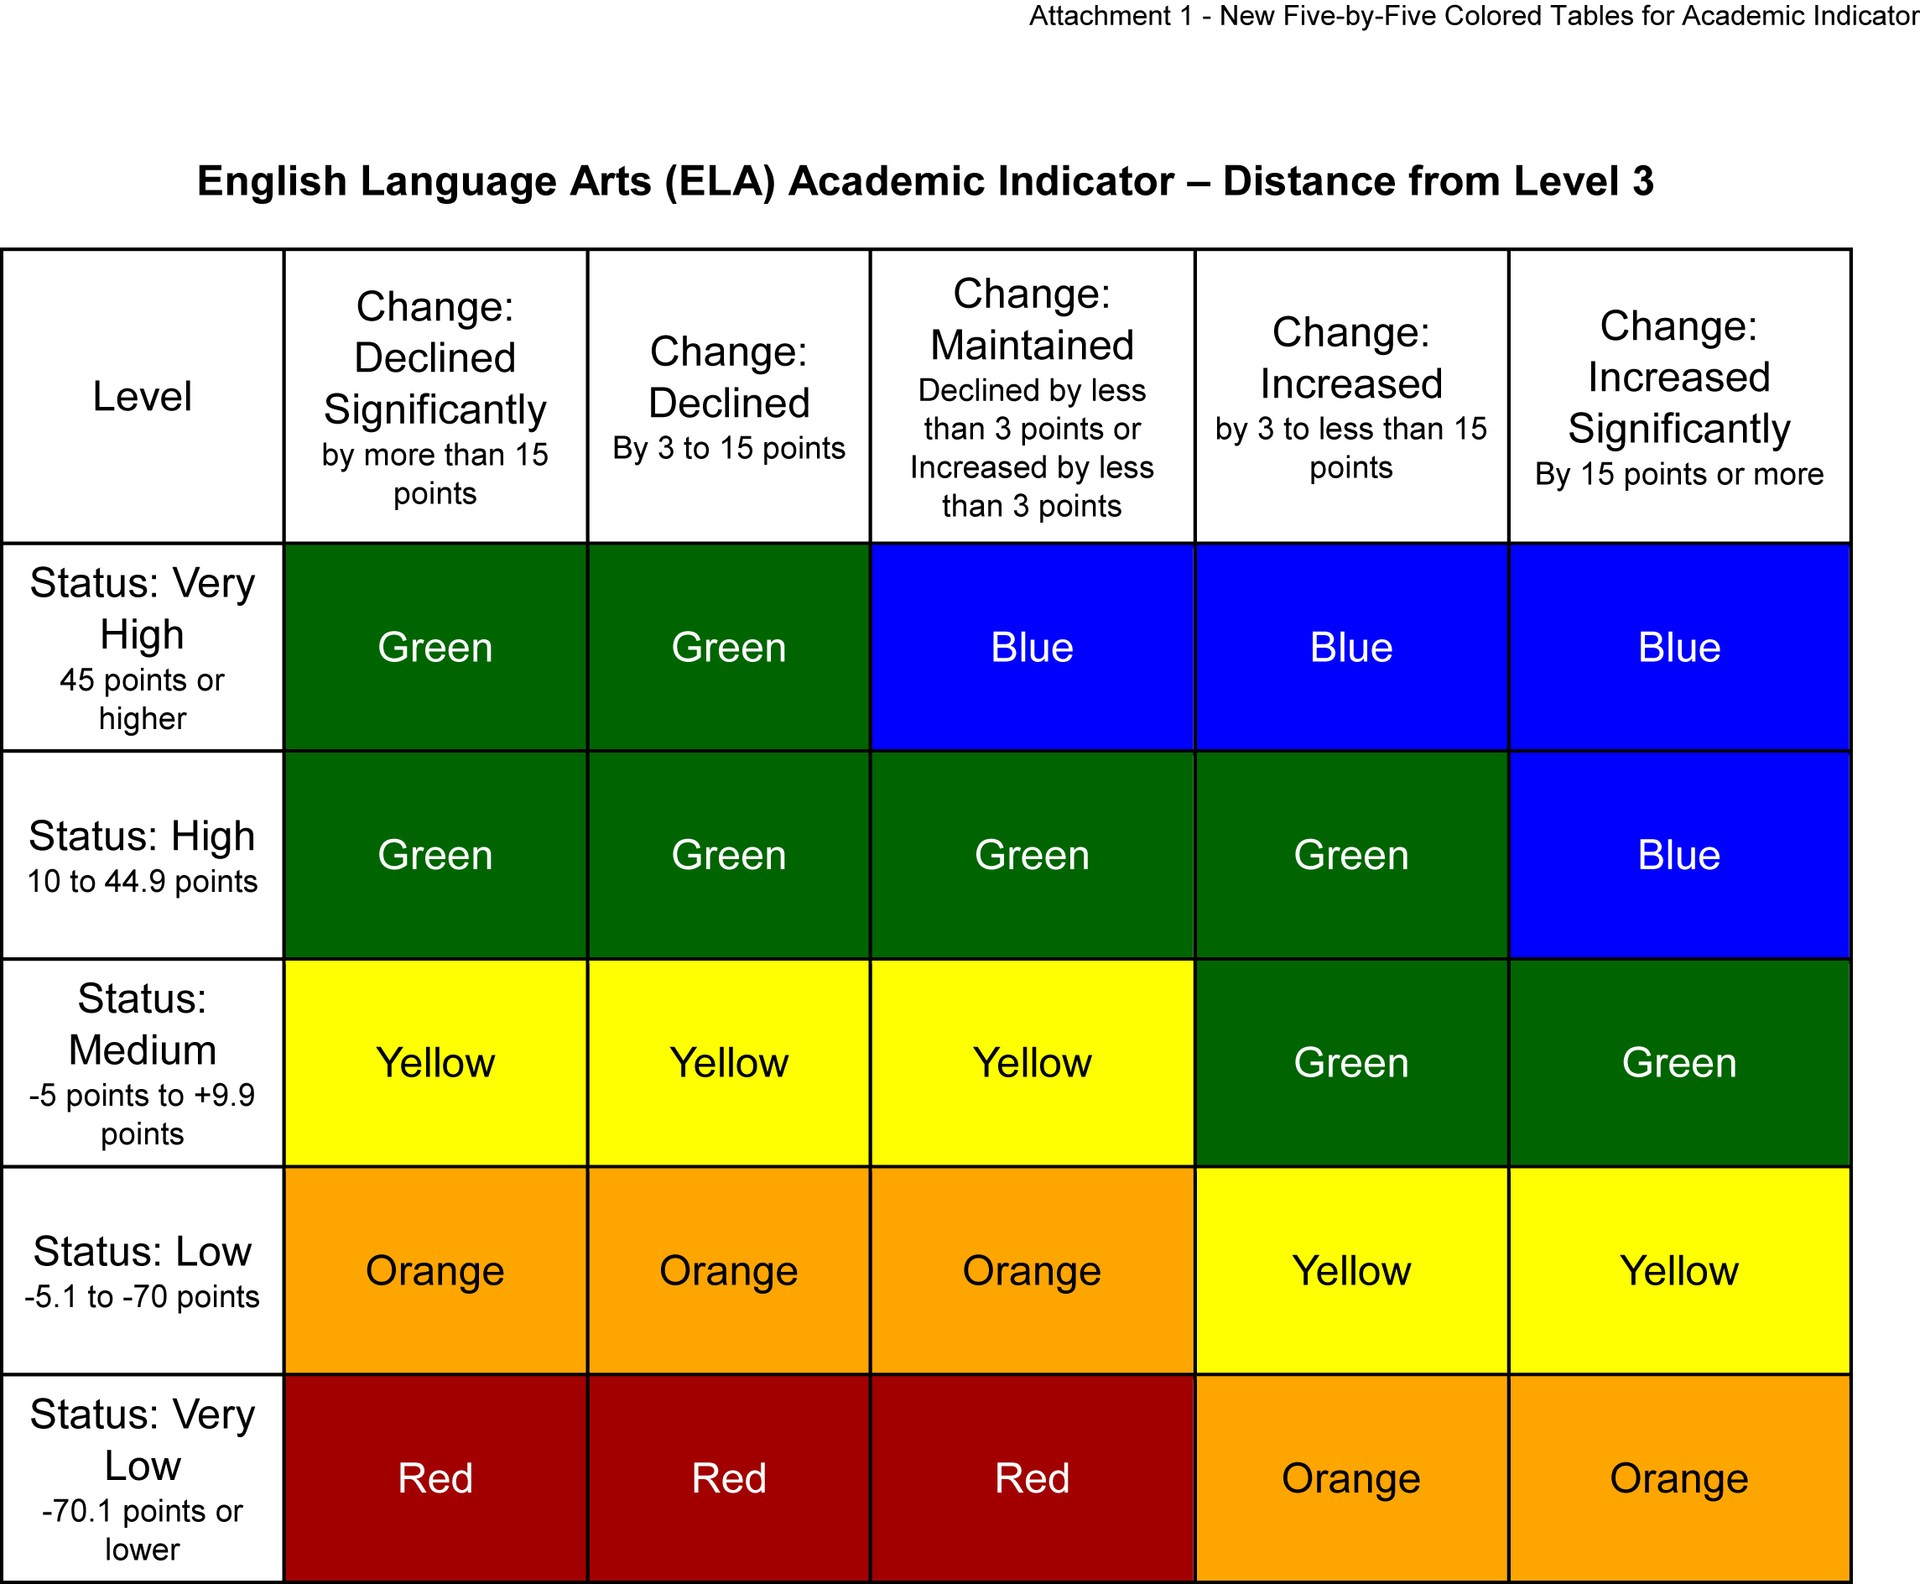 Figure 1. English Language Arts Academic Indicator, Dashboard five by five..